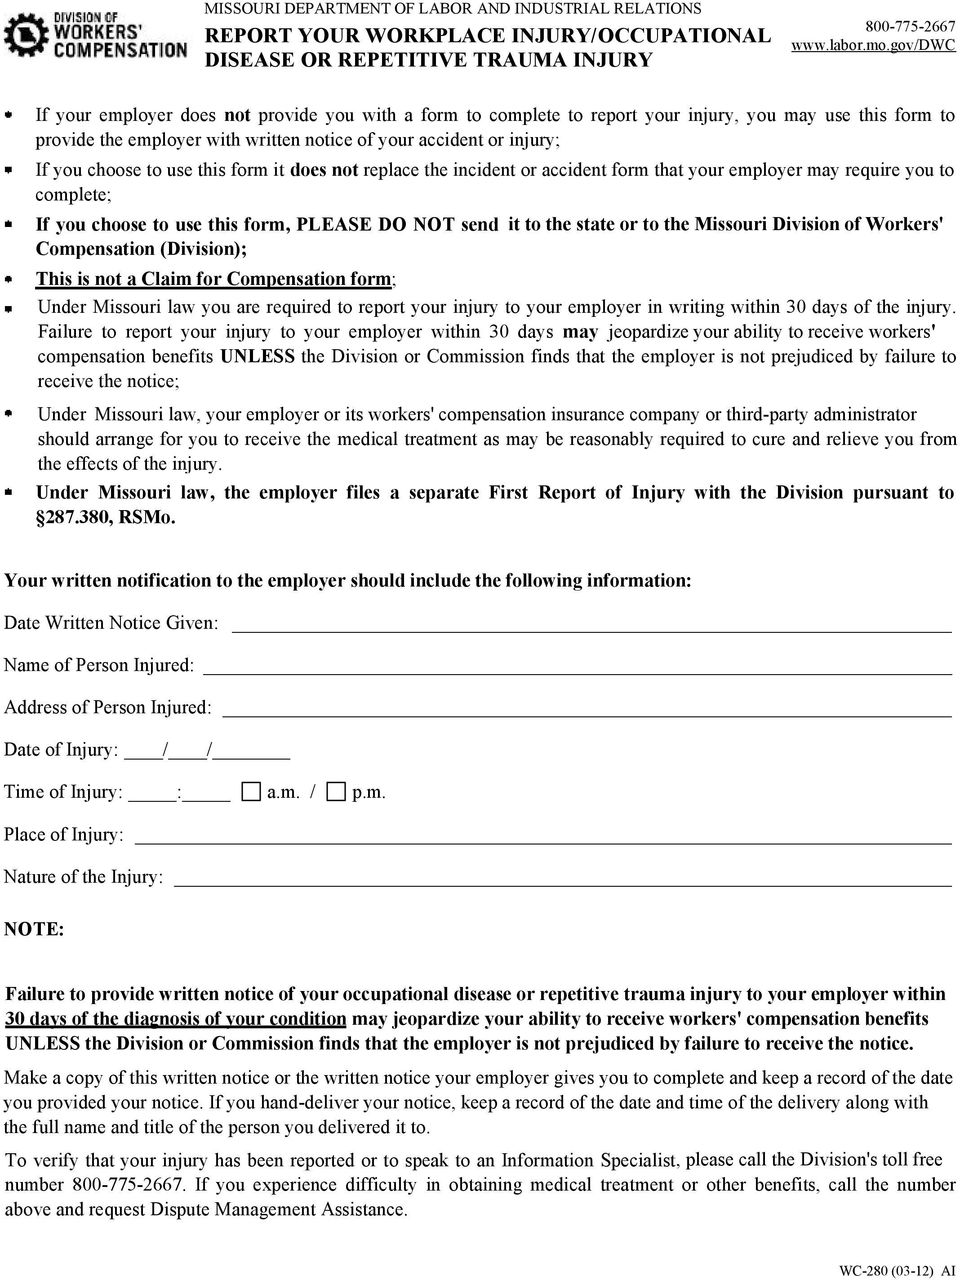 choose to use this form it does not replace the incident or accident form that your employer may require you to complete; If you choose to use this form, PLEASE D NT send Compensation (Division); it